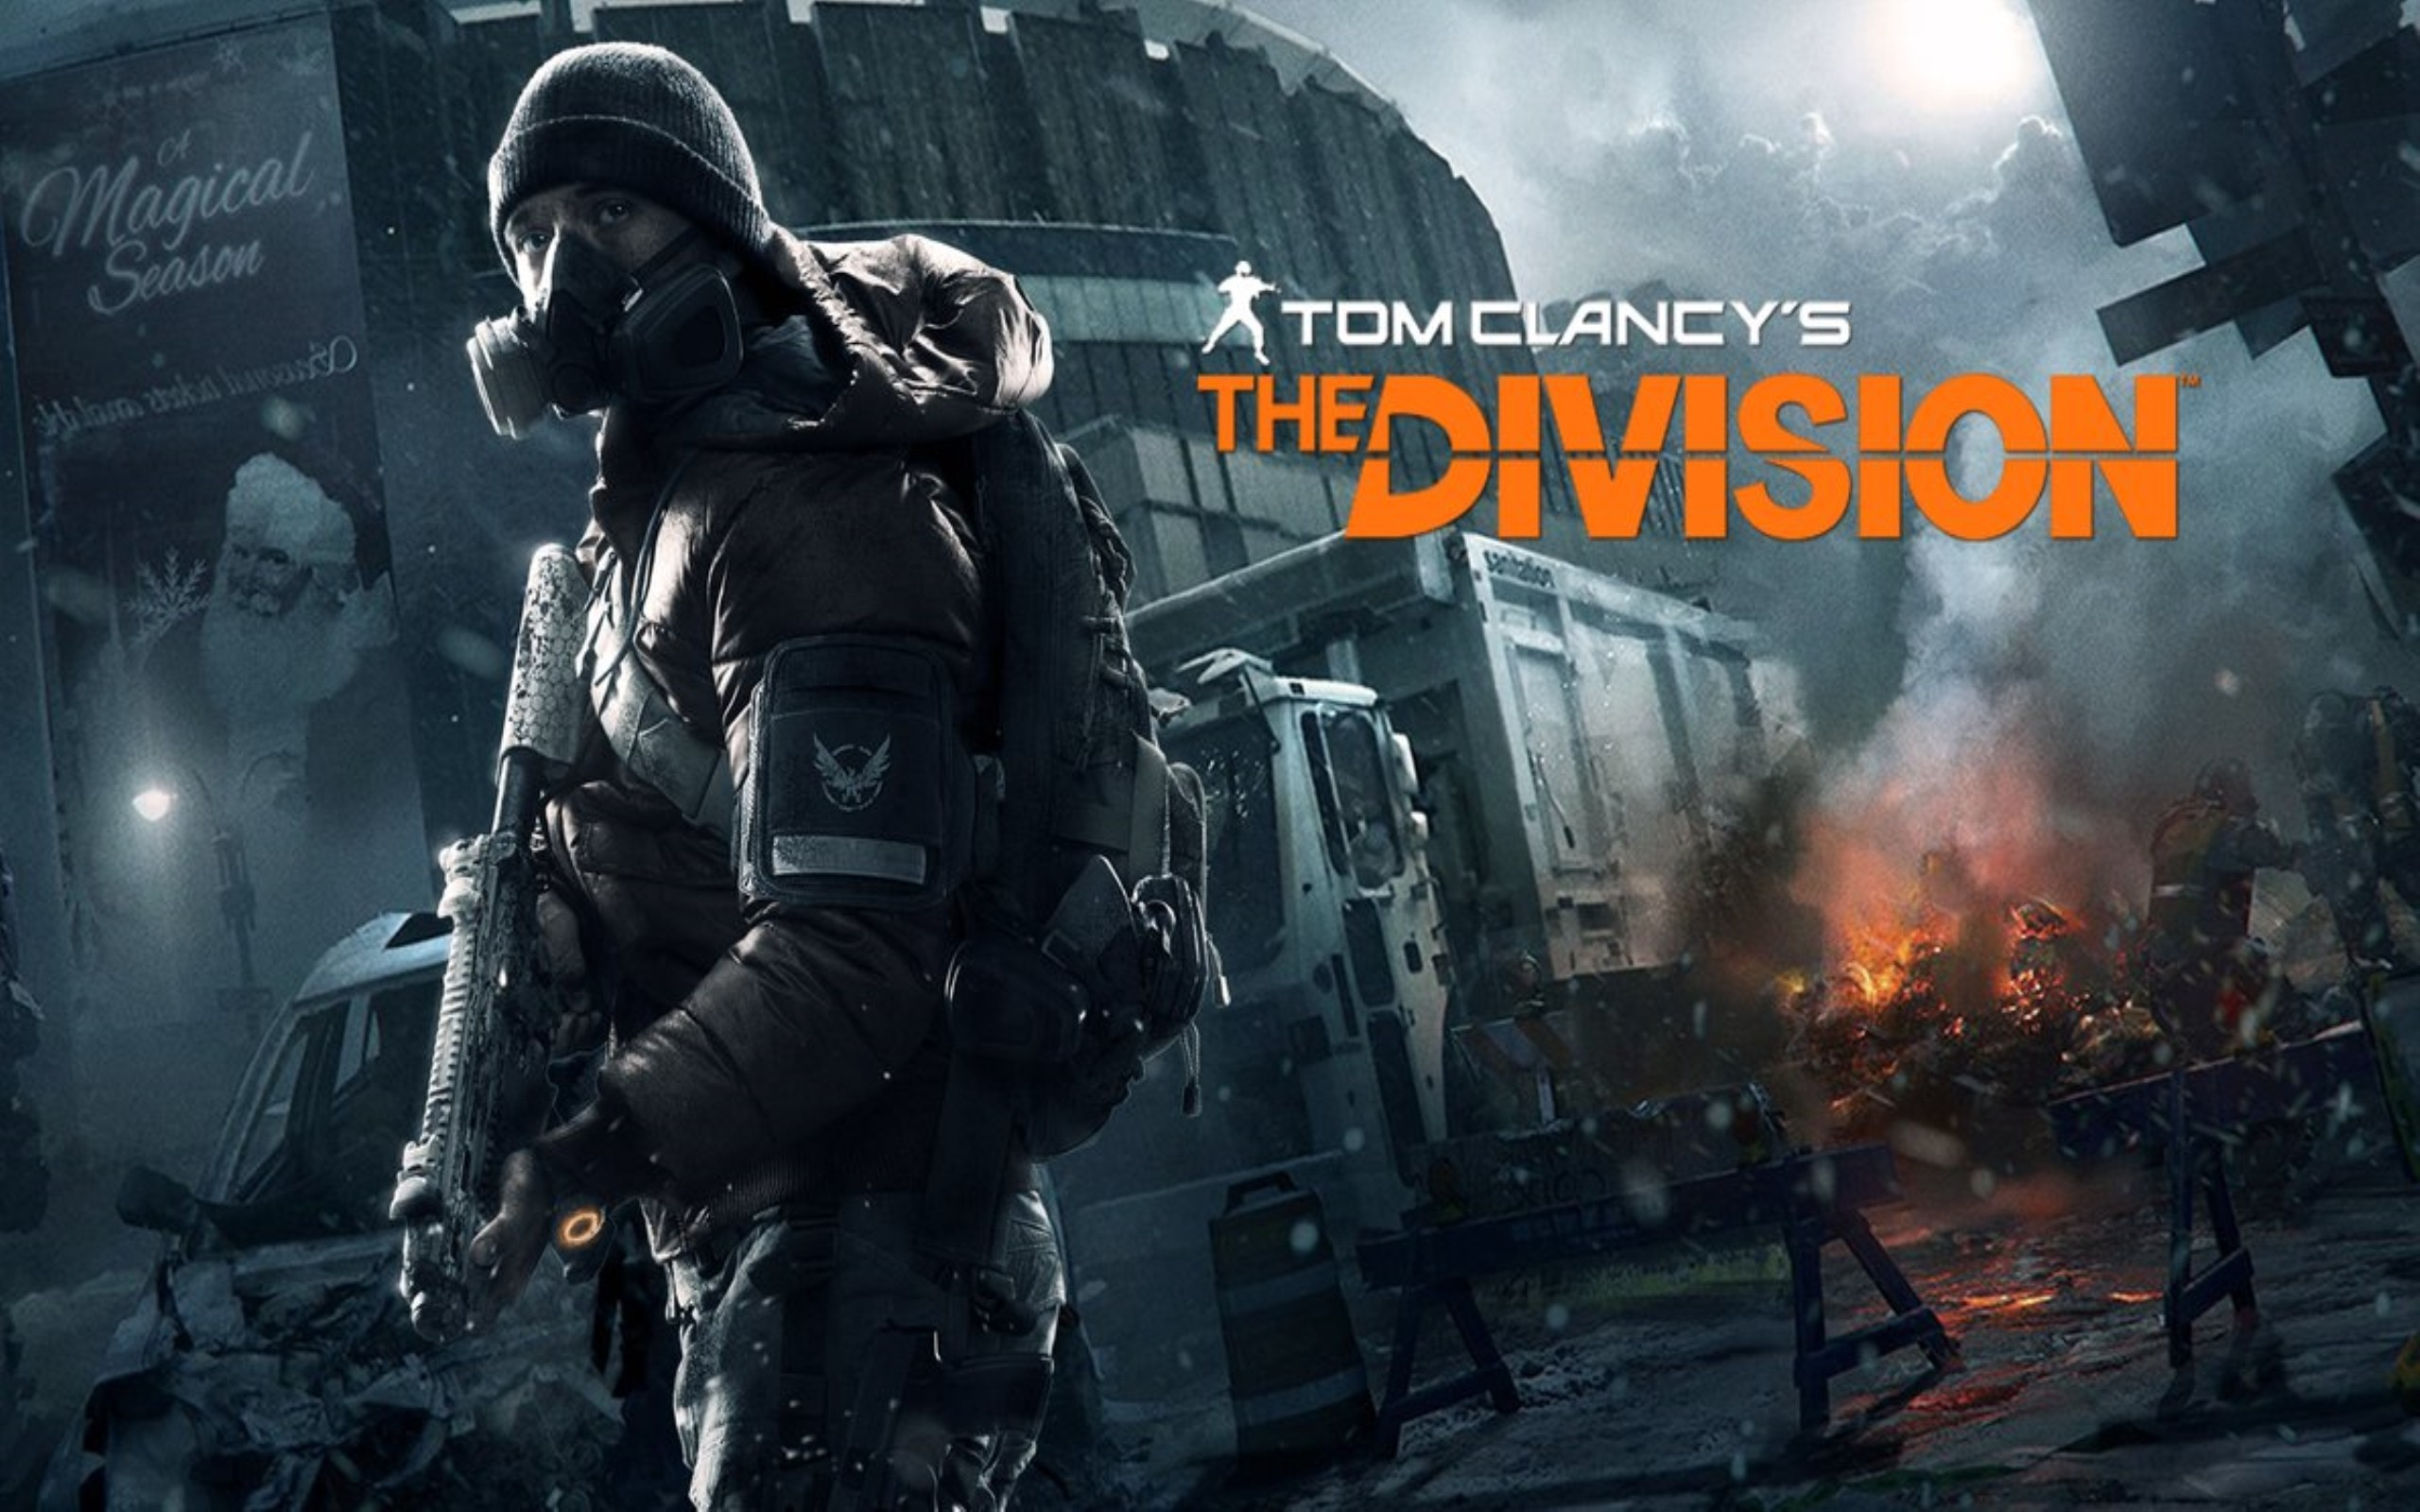 The Division Wallpaper 1920x1080 1 Download Free Beautiful Full HD